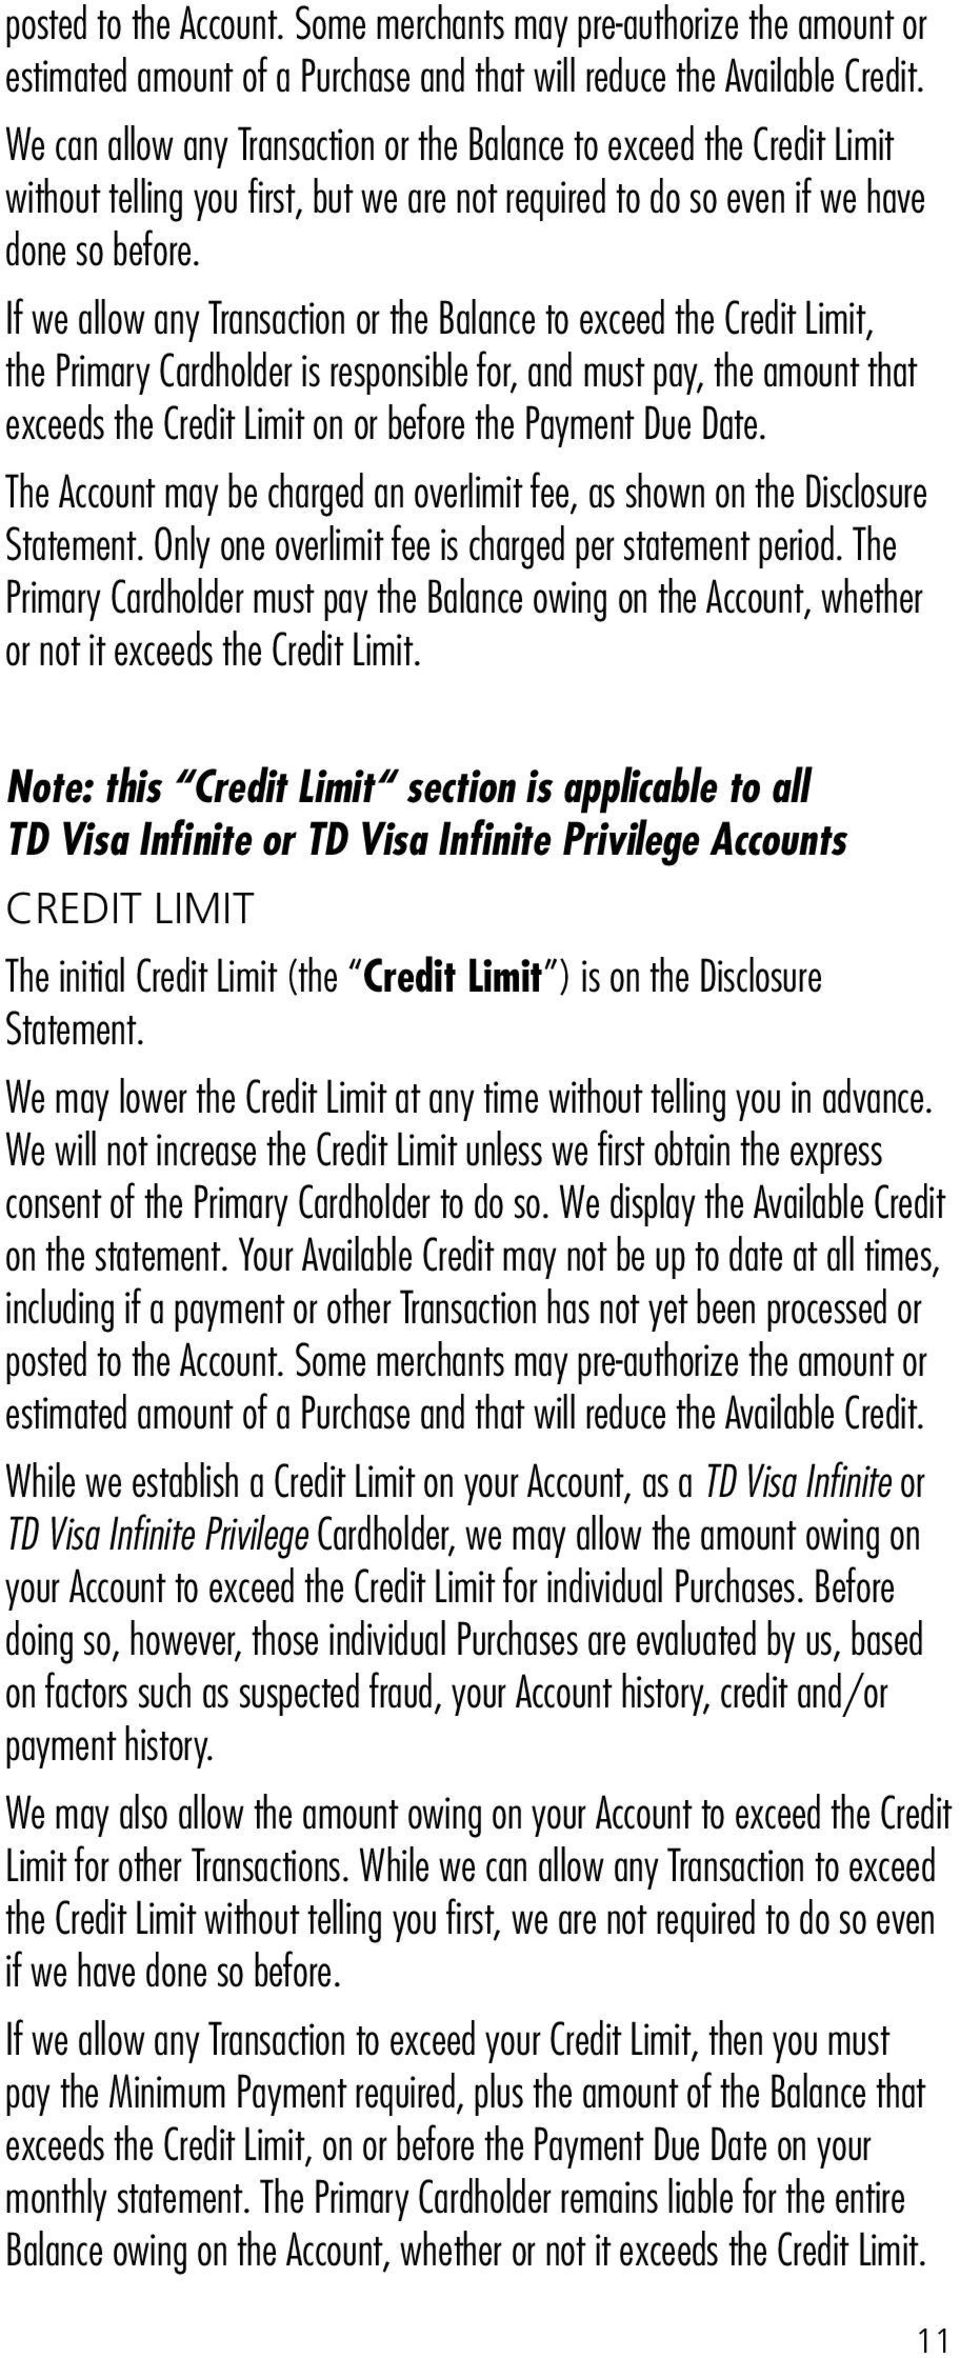 If we allow any Transaction or the Balance to exceed the Credit Limit, the Primary Cardholder is responsible for, and must pay, the amount that exceeds the Credit Limit on or before the Payment Due